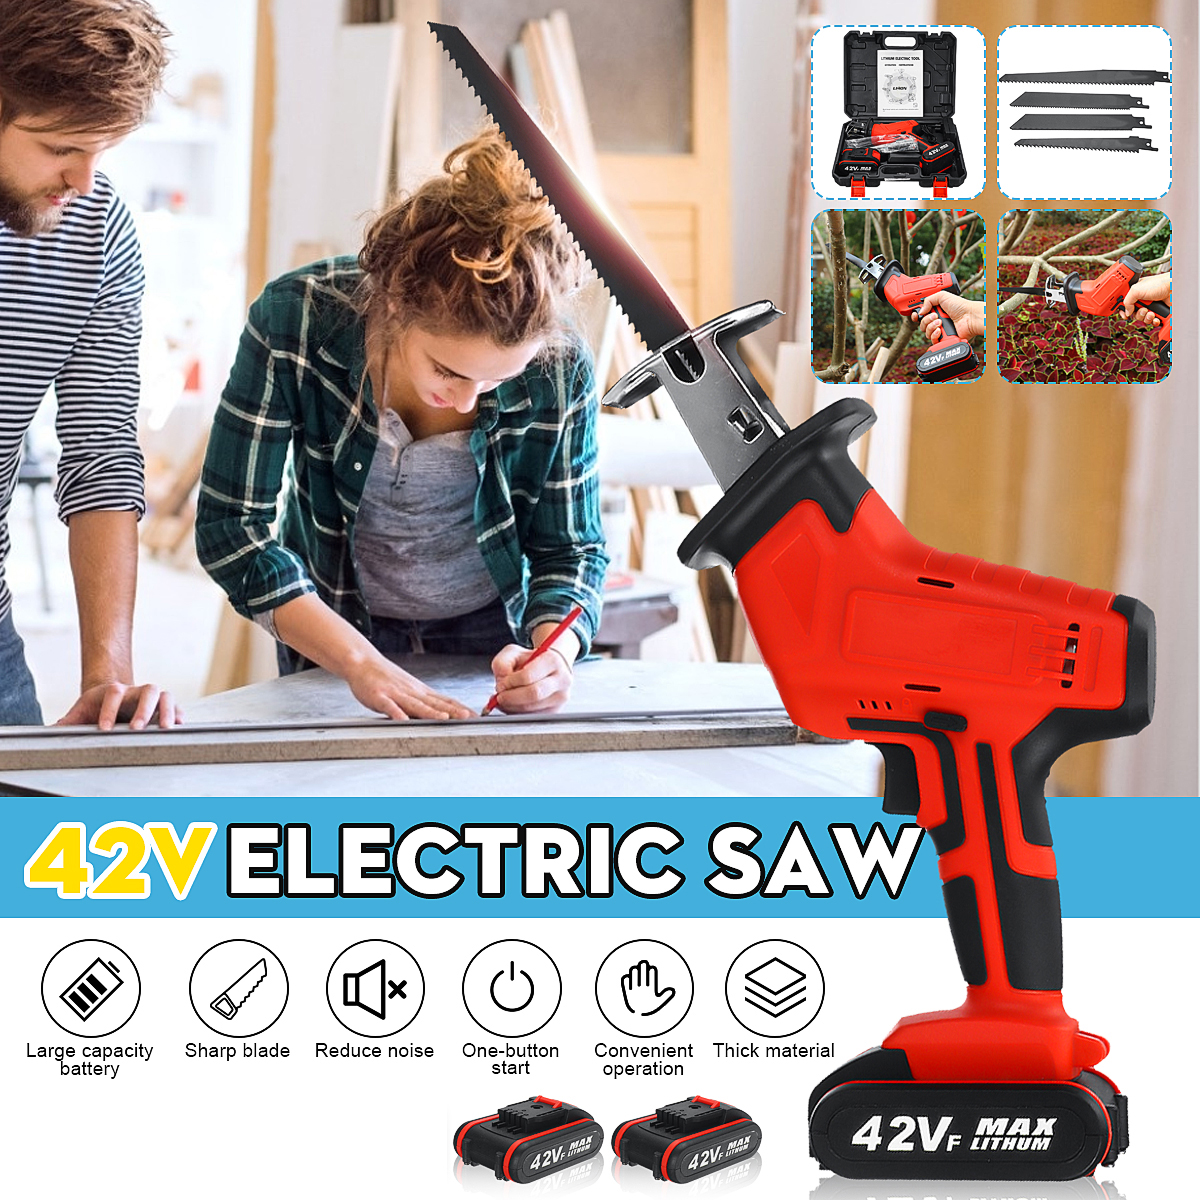 New 42V Cordless Reciprocating Saw +4 Saw blades Metal Cutting Wood Tool Portable Woodworking Cutters 2 Battery New